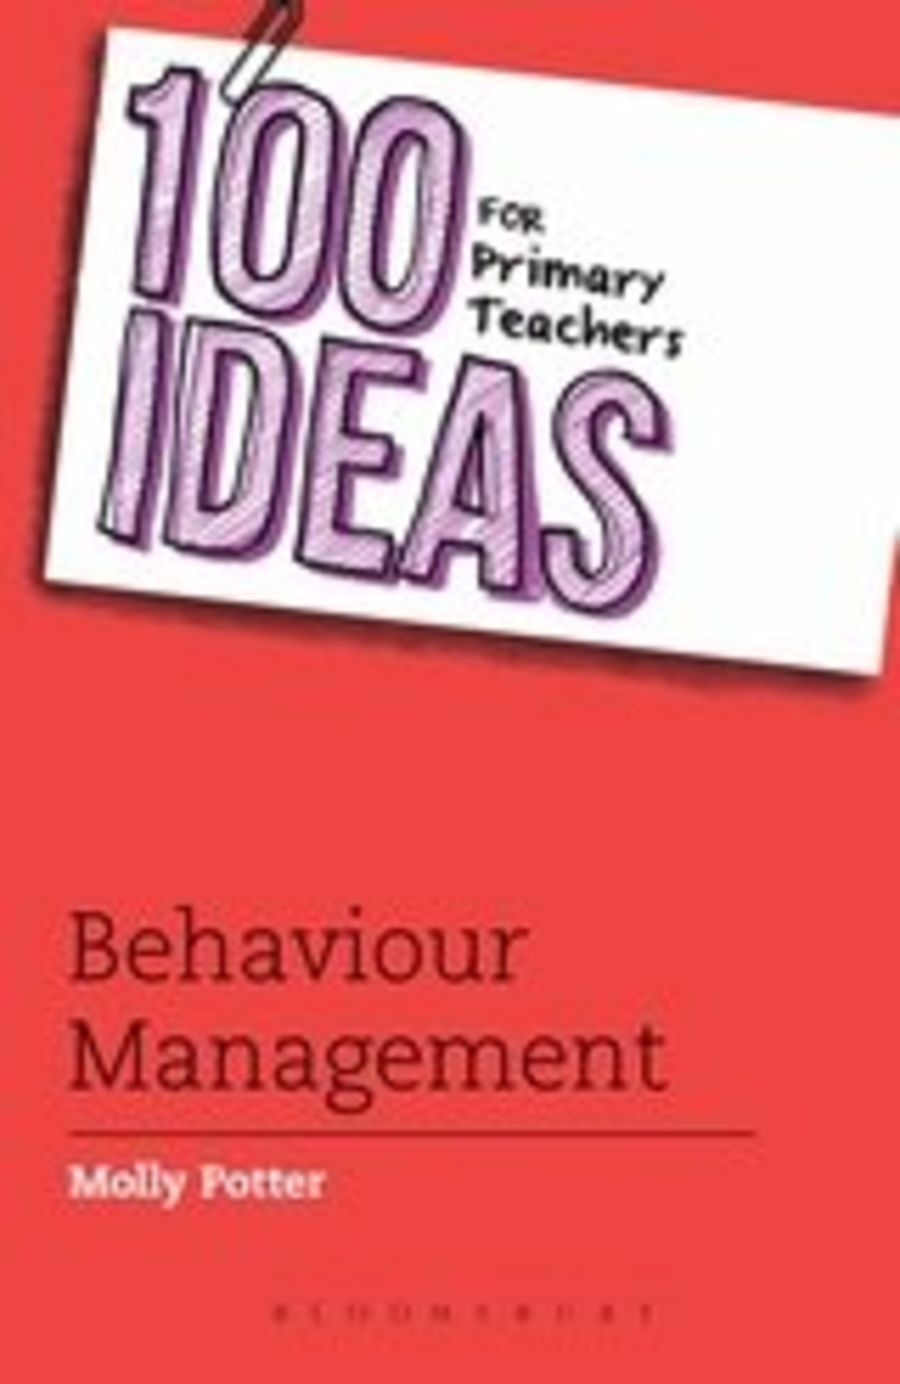 100 Ideas Behaviour Management for Primary Teachers